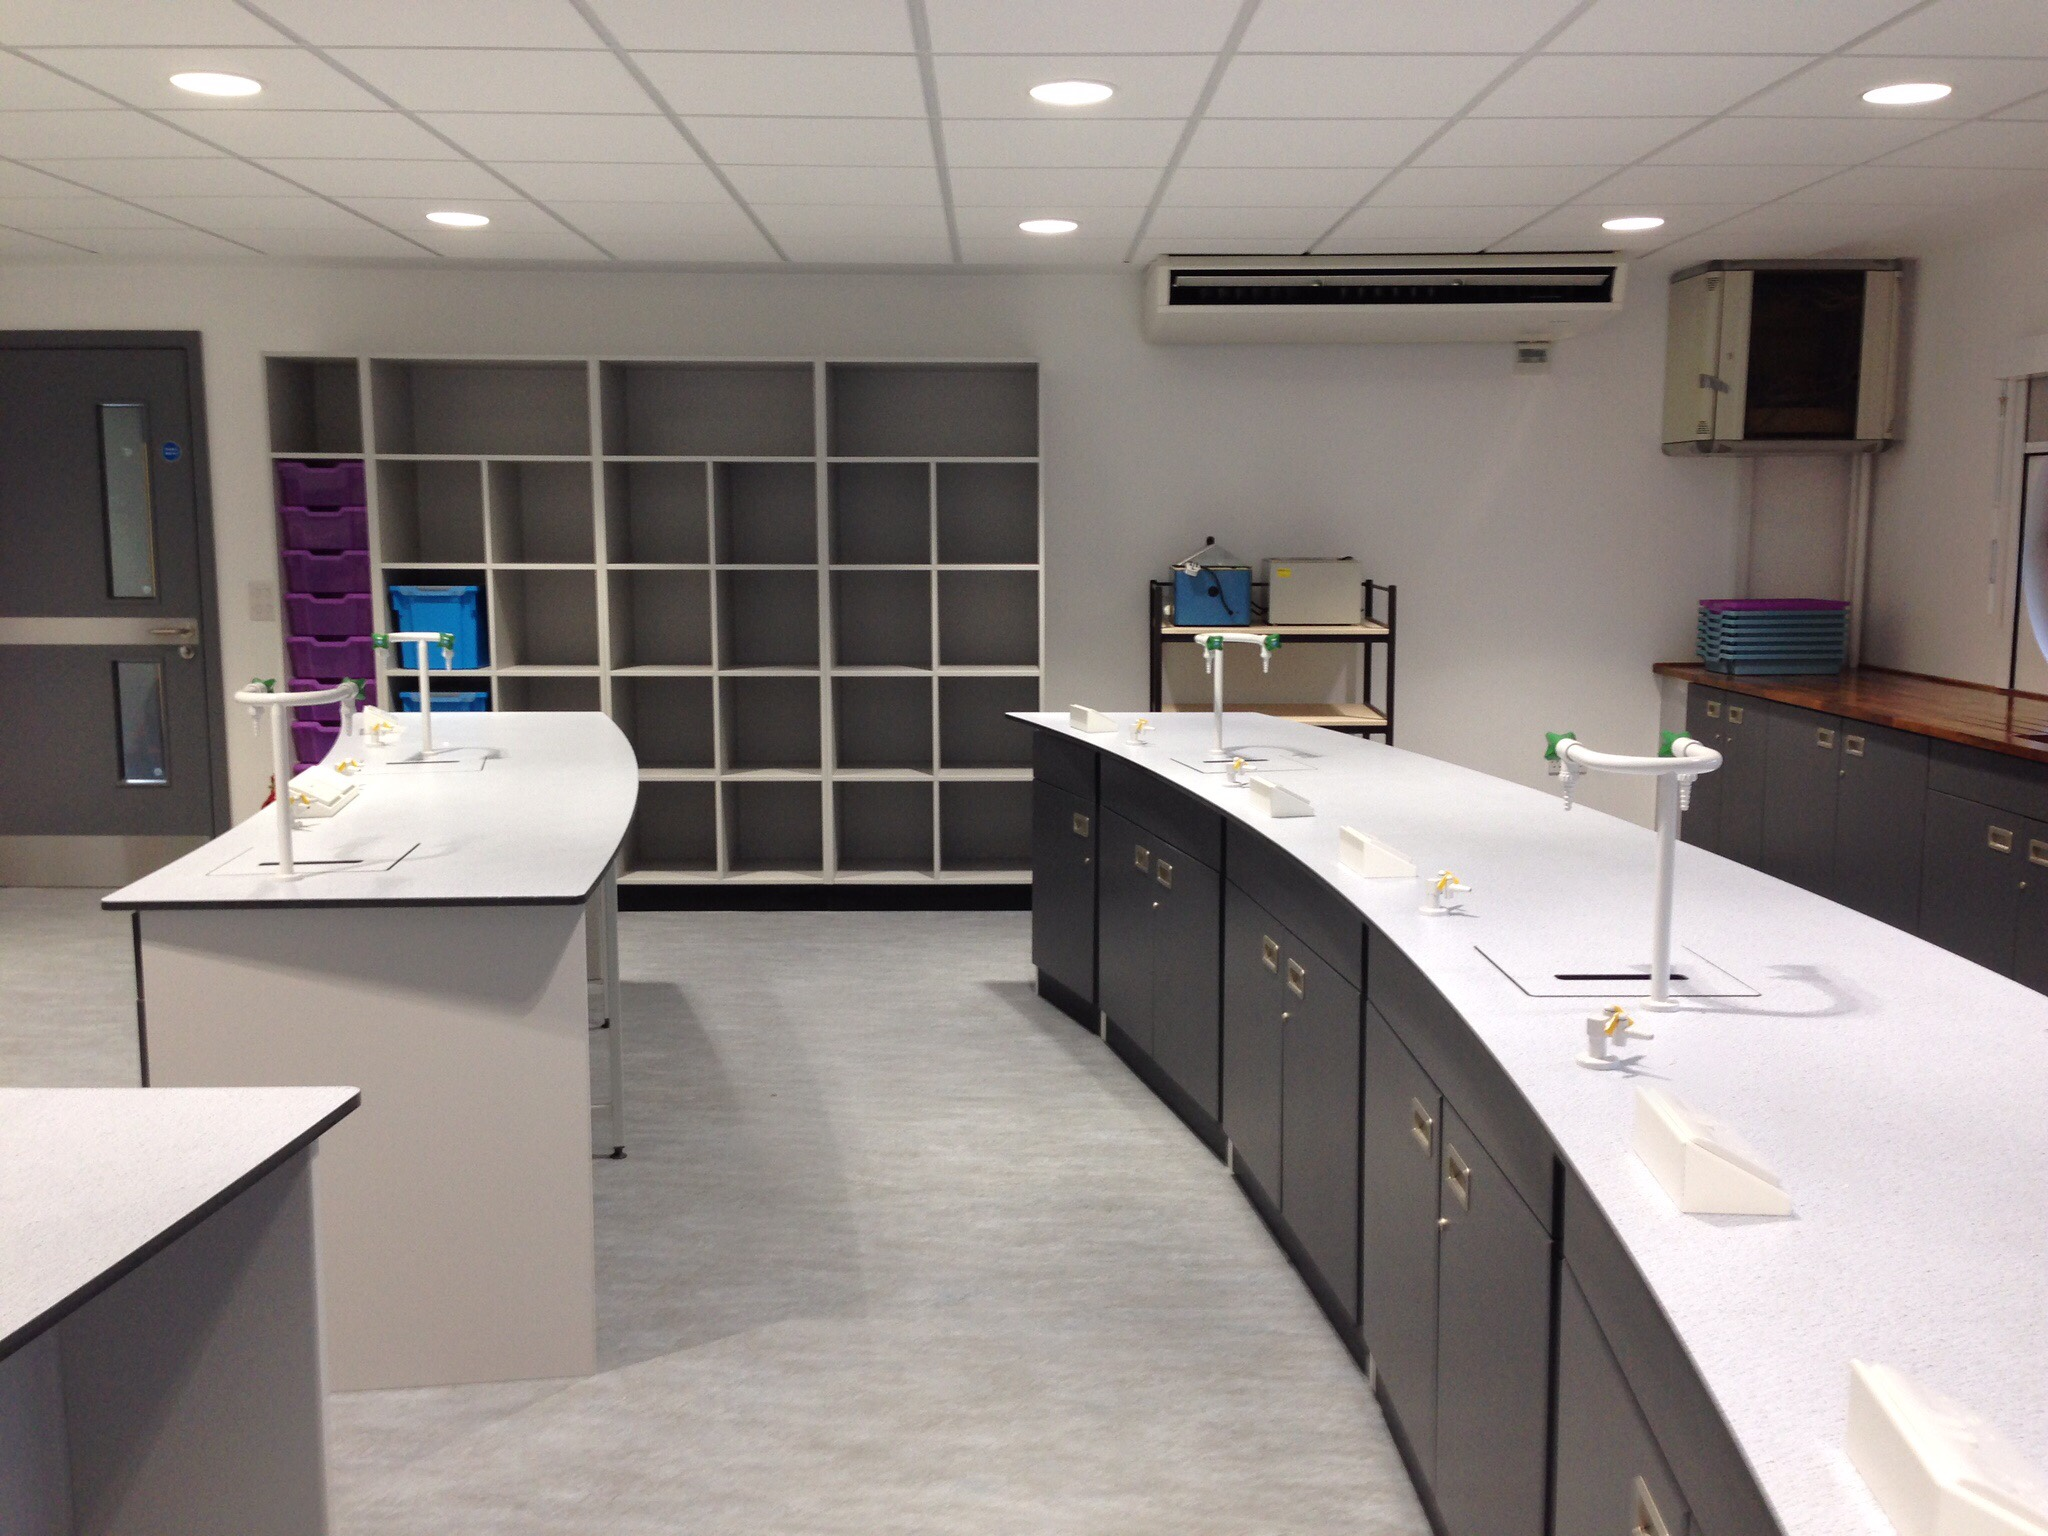 AJT Laboratory Furniture Associated Joinery Techniques 2.jpg